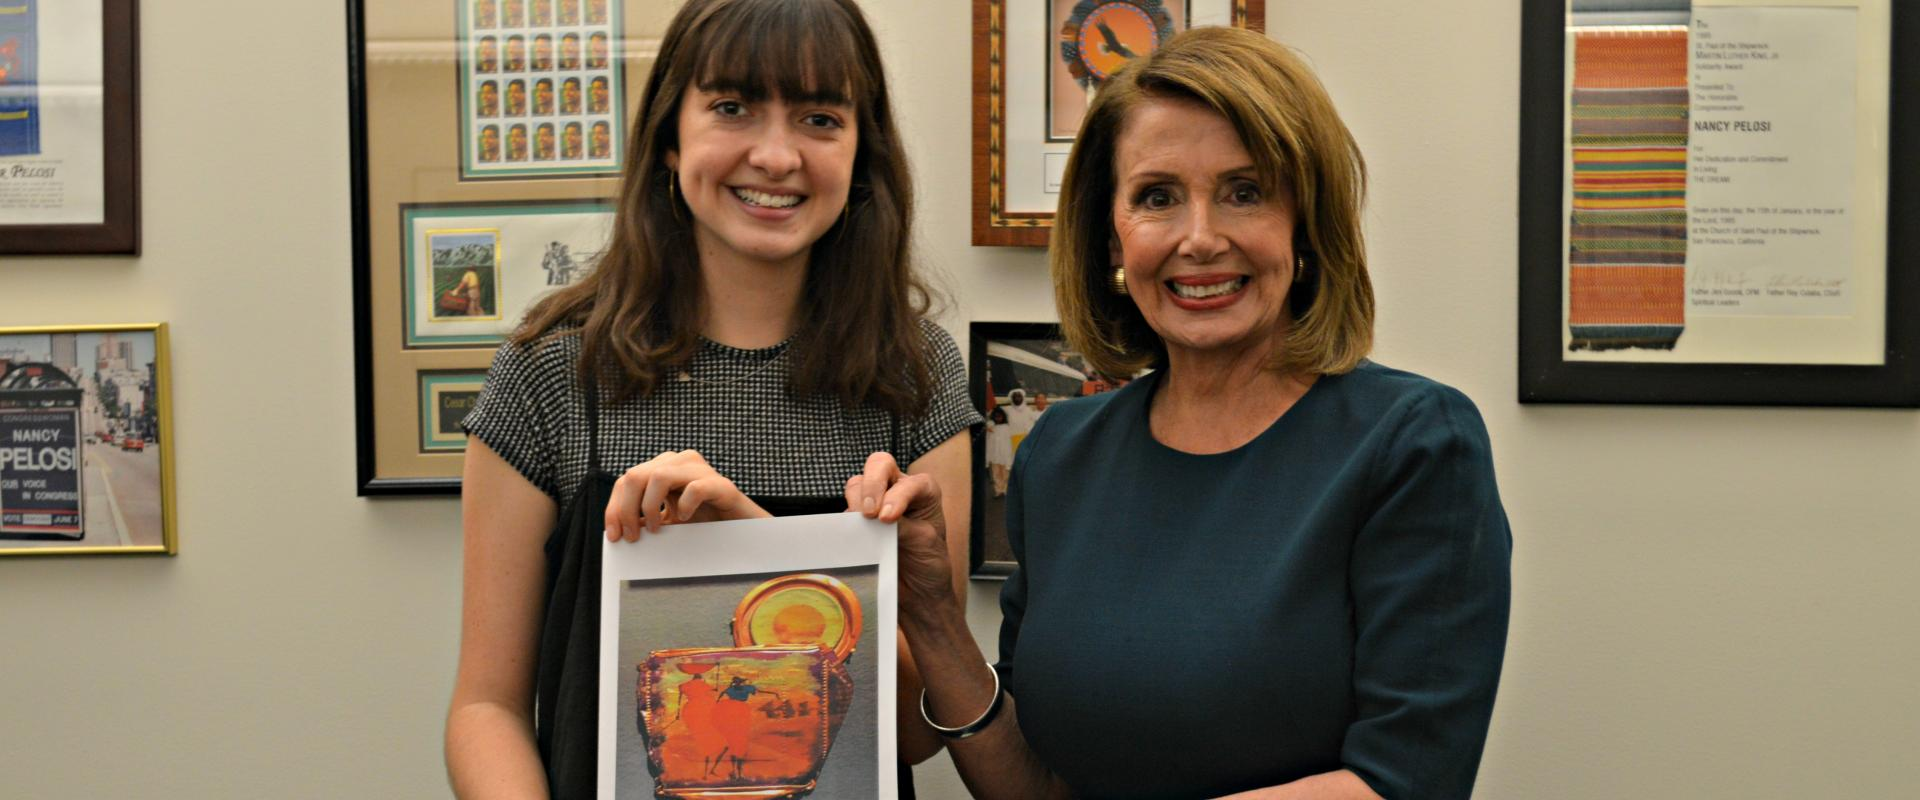 Congresswoman Pelosi congratulates Sofia Riley, a graduate of Saints Peter & Paul School, on winning the 2017 Congressional Art Competition for California's 12th Congressional District. Sophia's art piece Women at Work will hang in the U.S. Capitol in the